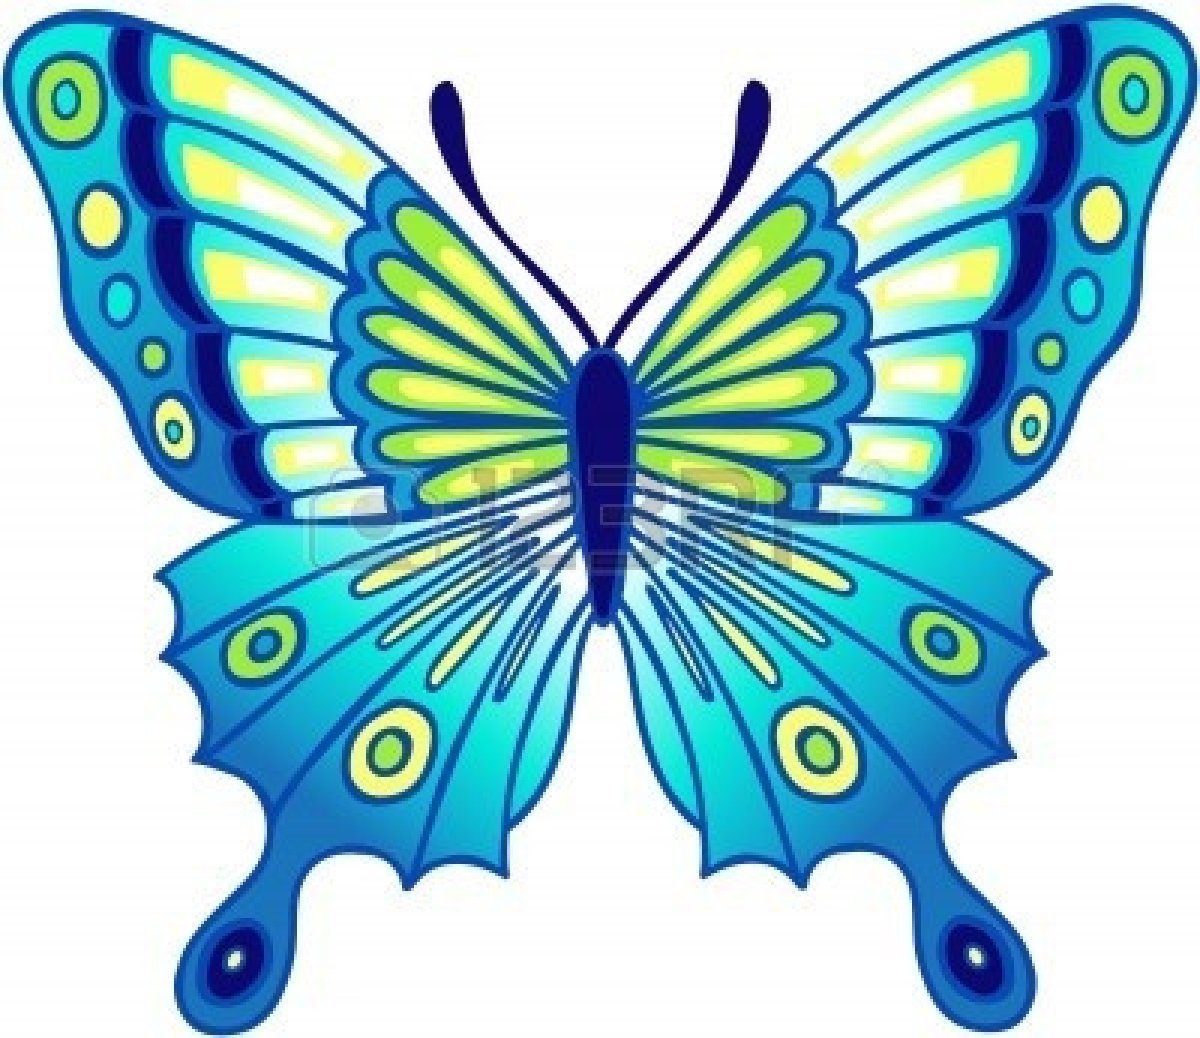 Colorful Butterfly Clip Art - ClipArt Best